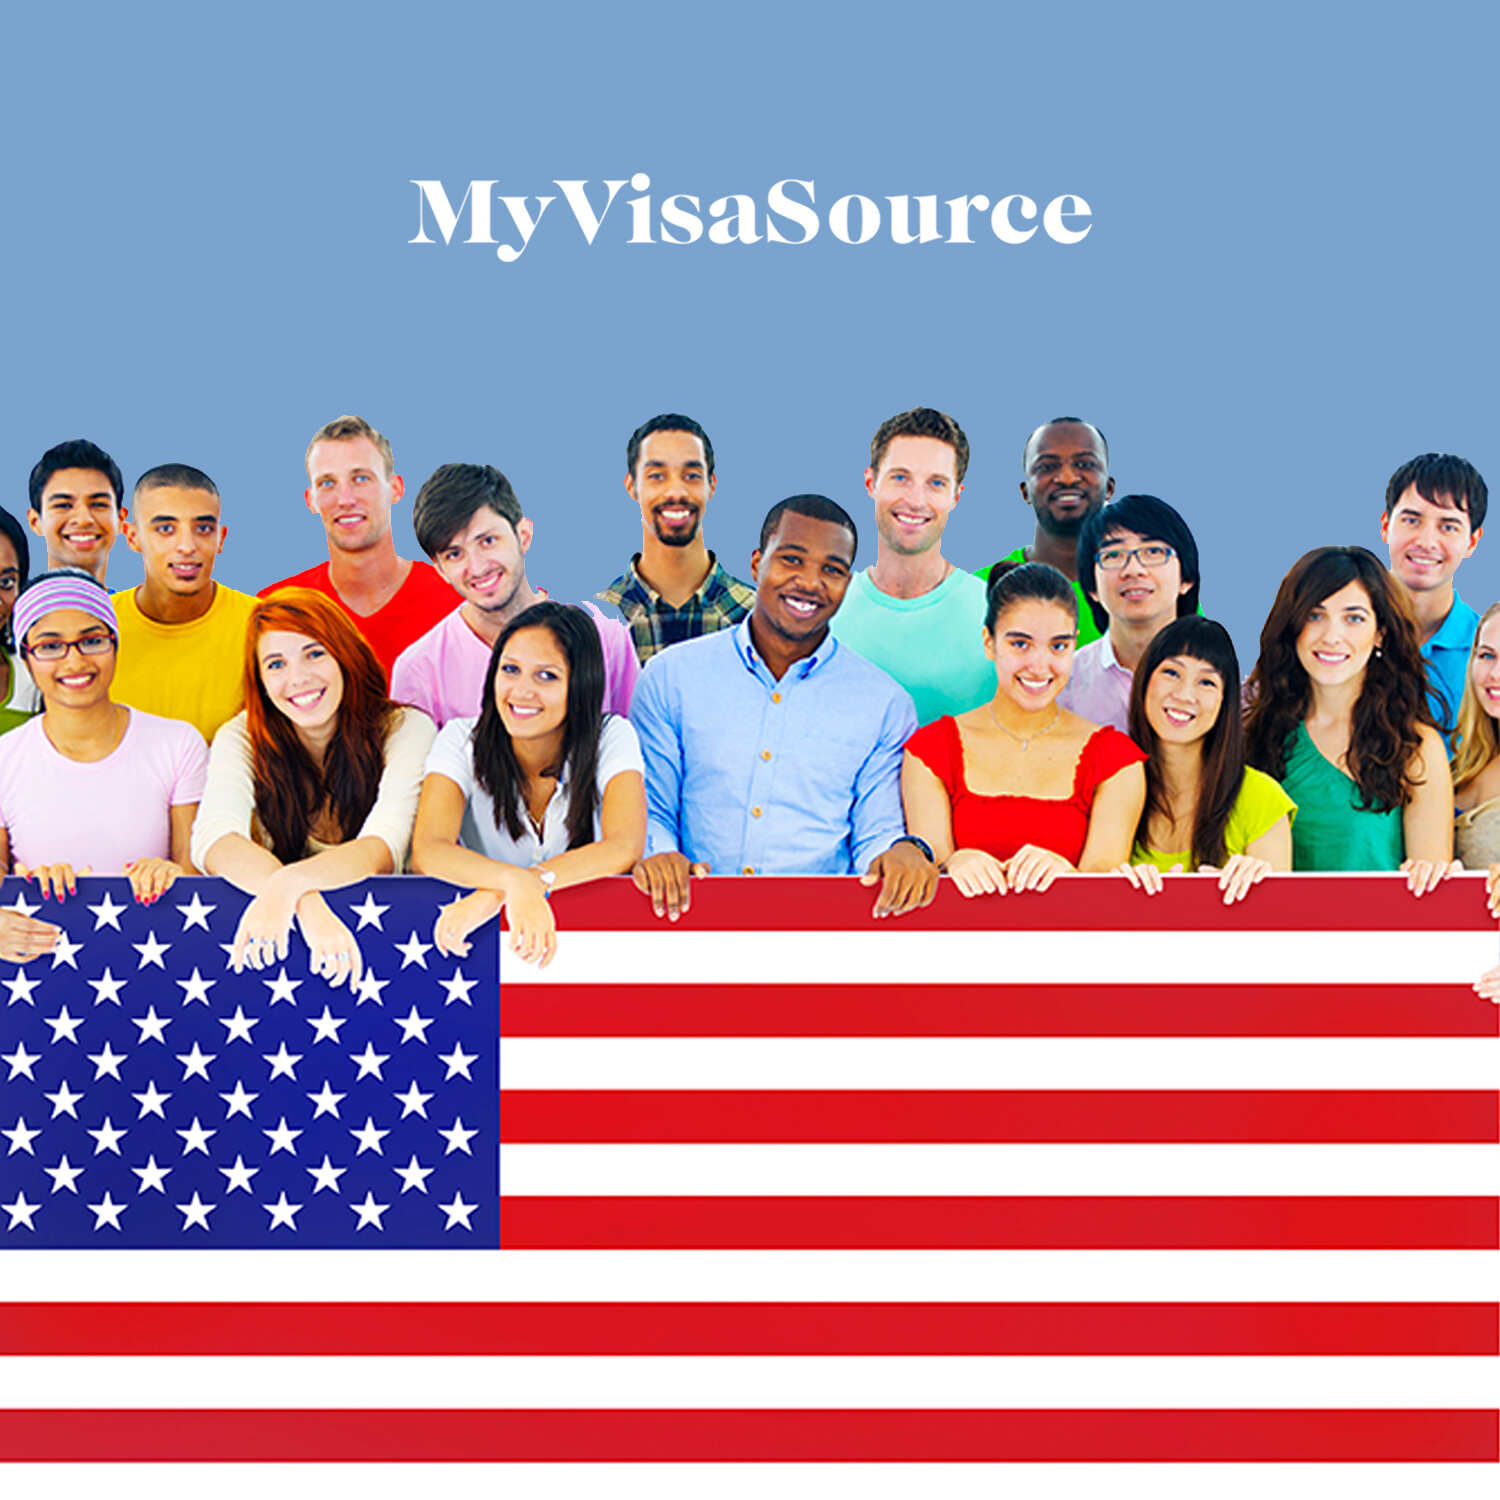 young students with different ethnicities posing behind an us flag my visa source